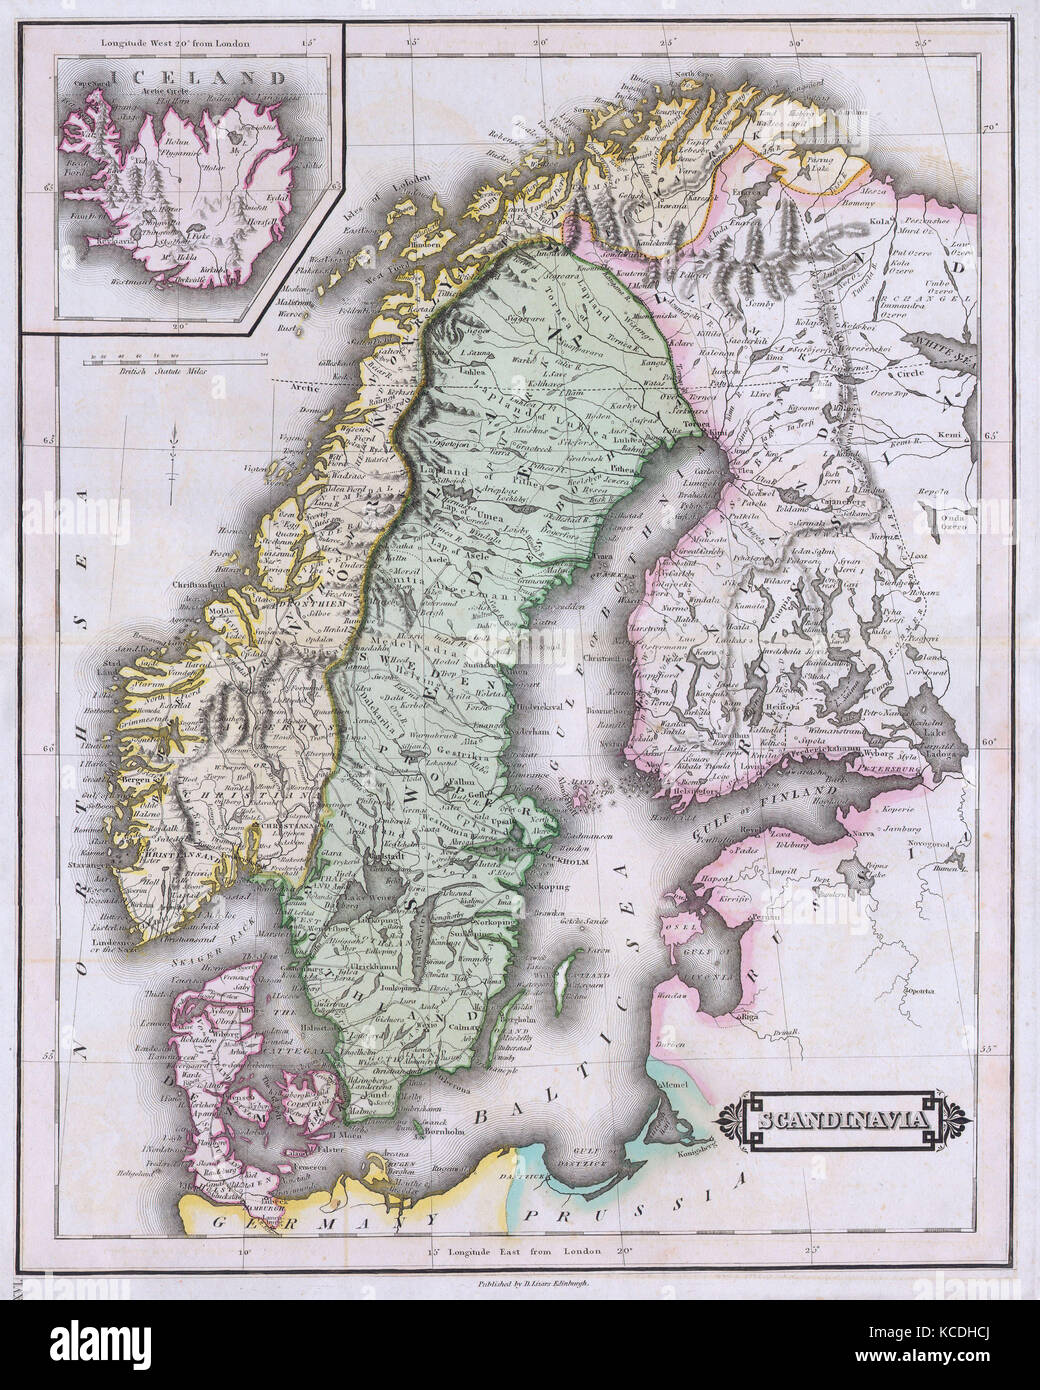 Antique map of iceland stock photos antique map of iceland stock 1840 lizars map of scandinavia norway sweden finland denmark iceland gumiabroncs Choice Image